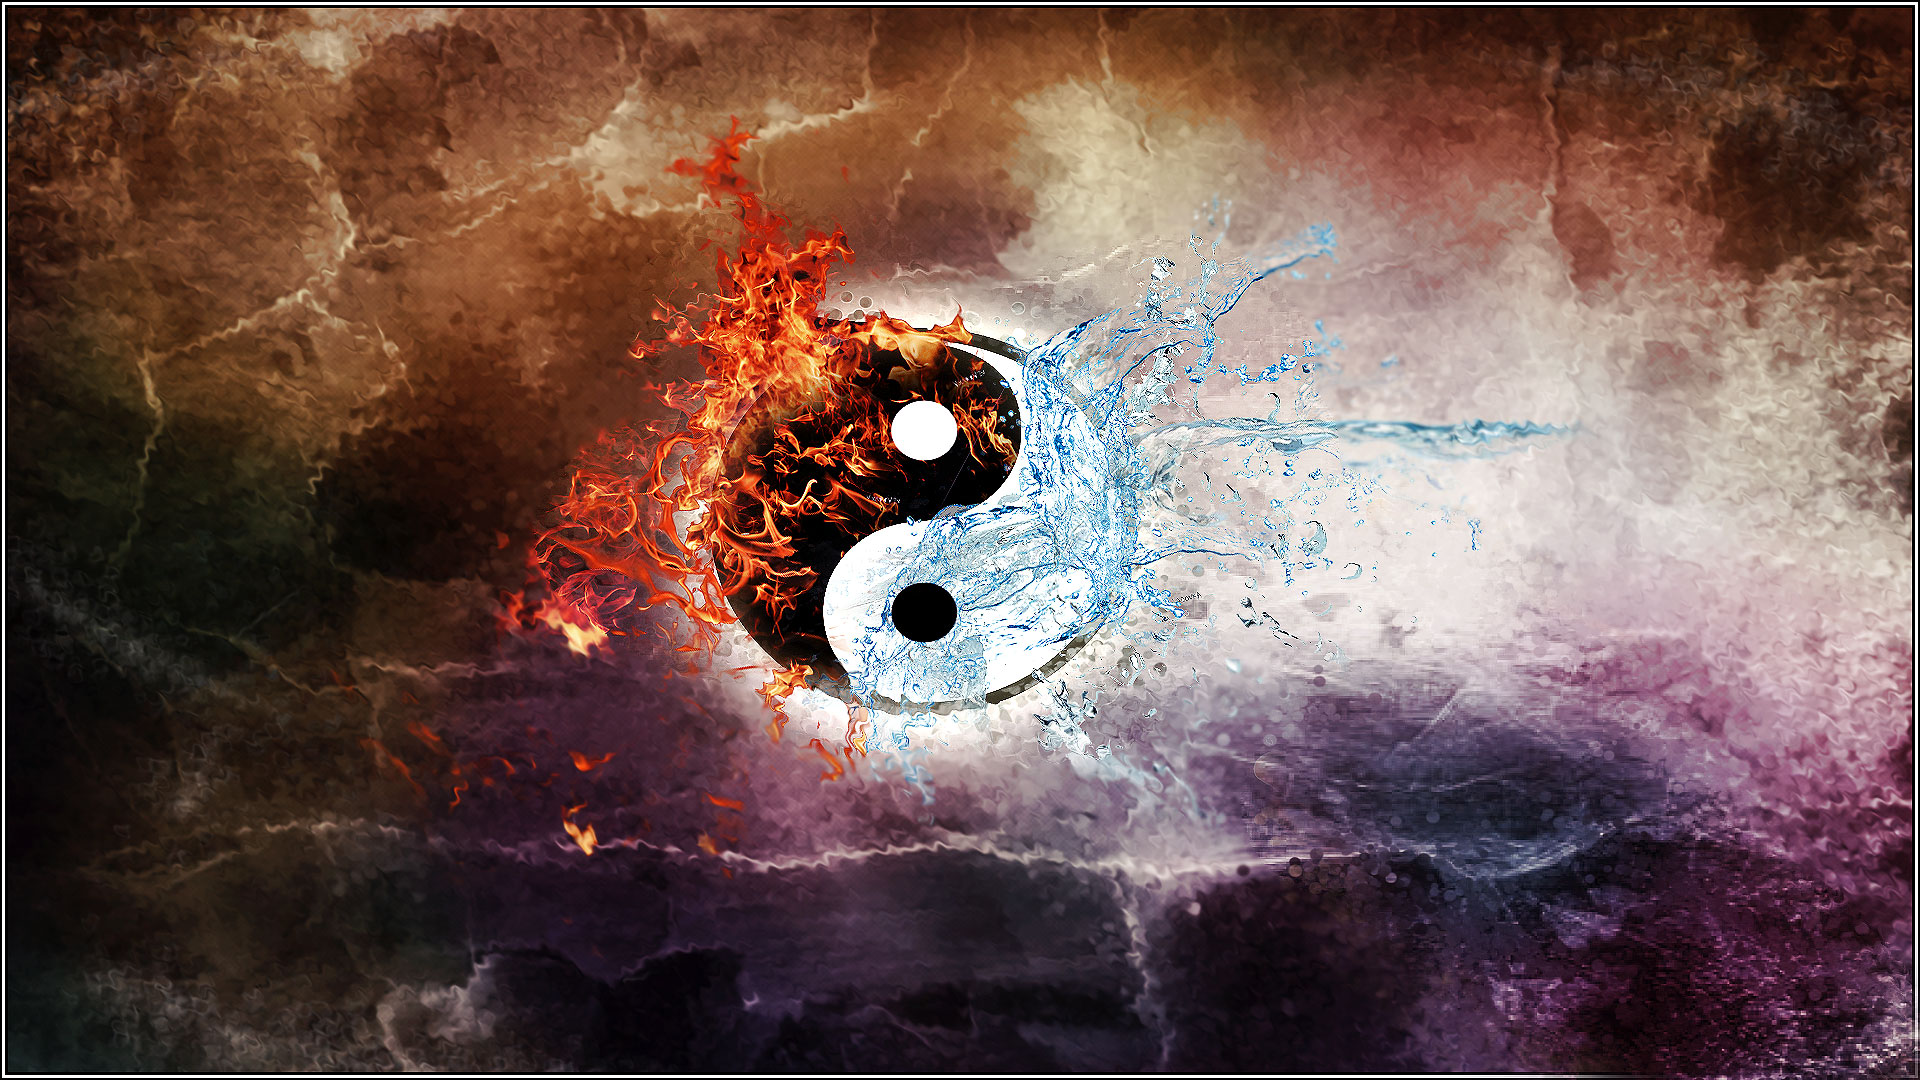 Yin-yang-Fire-Water-The-essences-of-Interdependency-Balance-wallpaper-wpc90010884